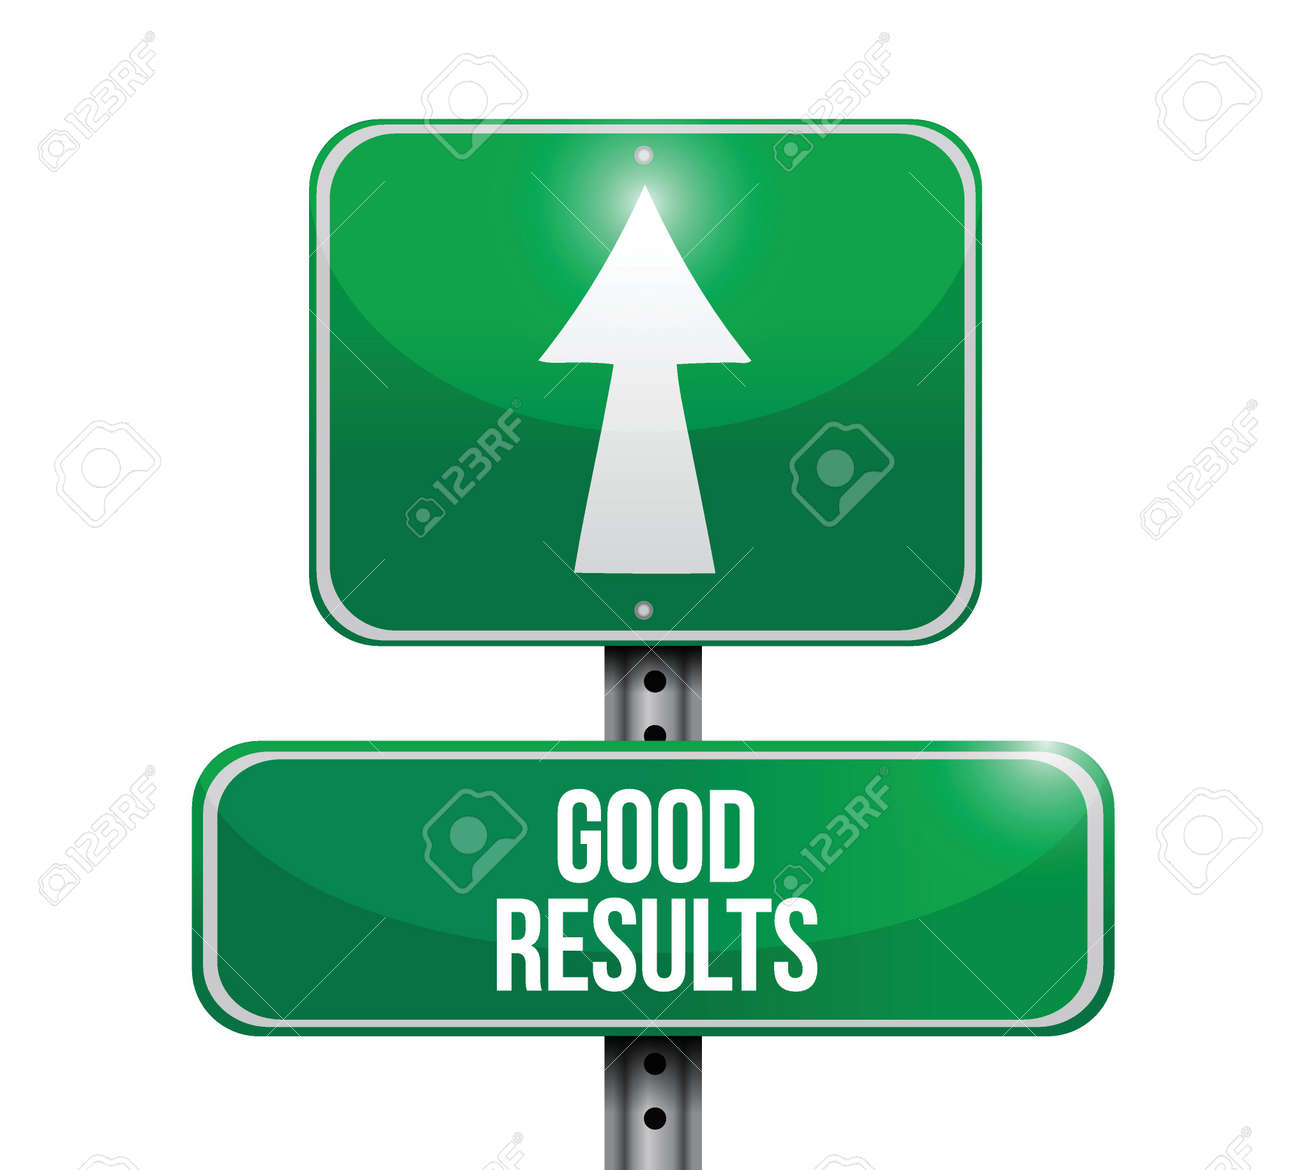 good results signpost illustration design over a white background Stock Vector - 27968517